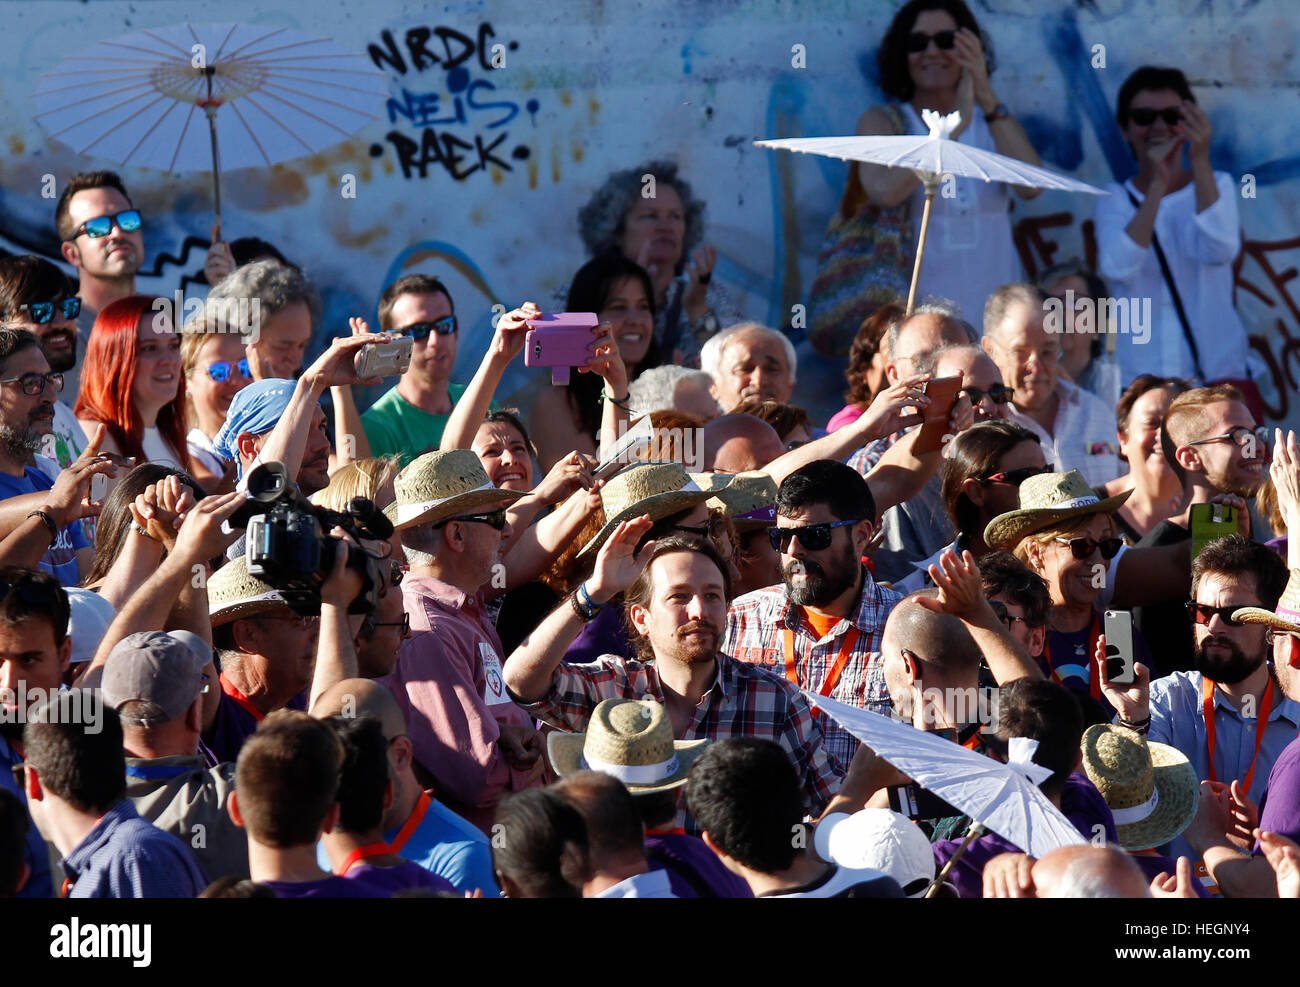 Pablo Iglesias , leader of Podemos. In the political rally in Palma de Mallorca, before Spain `s general elections - Stock Image